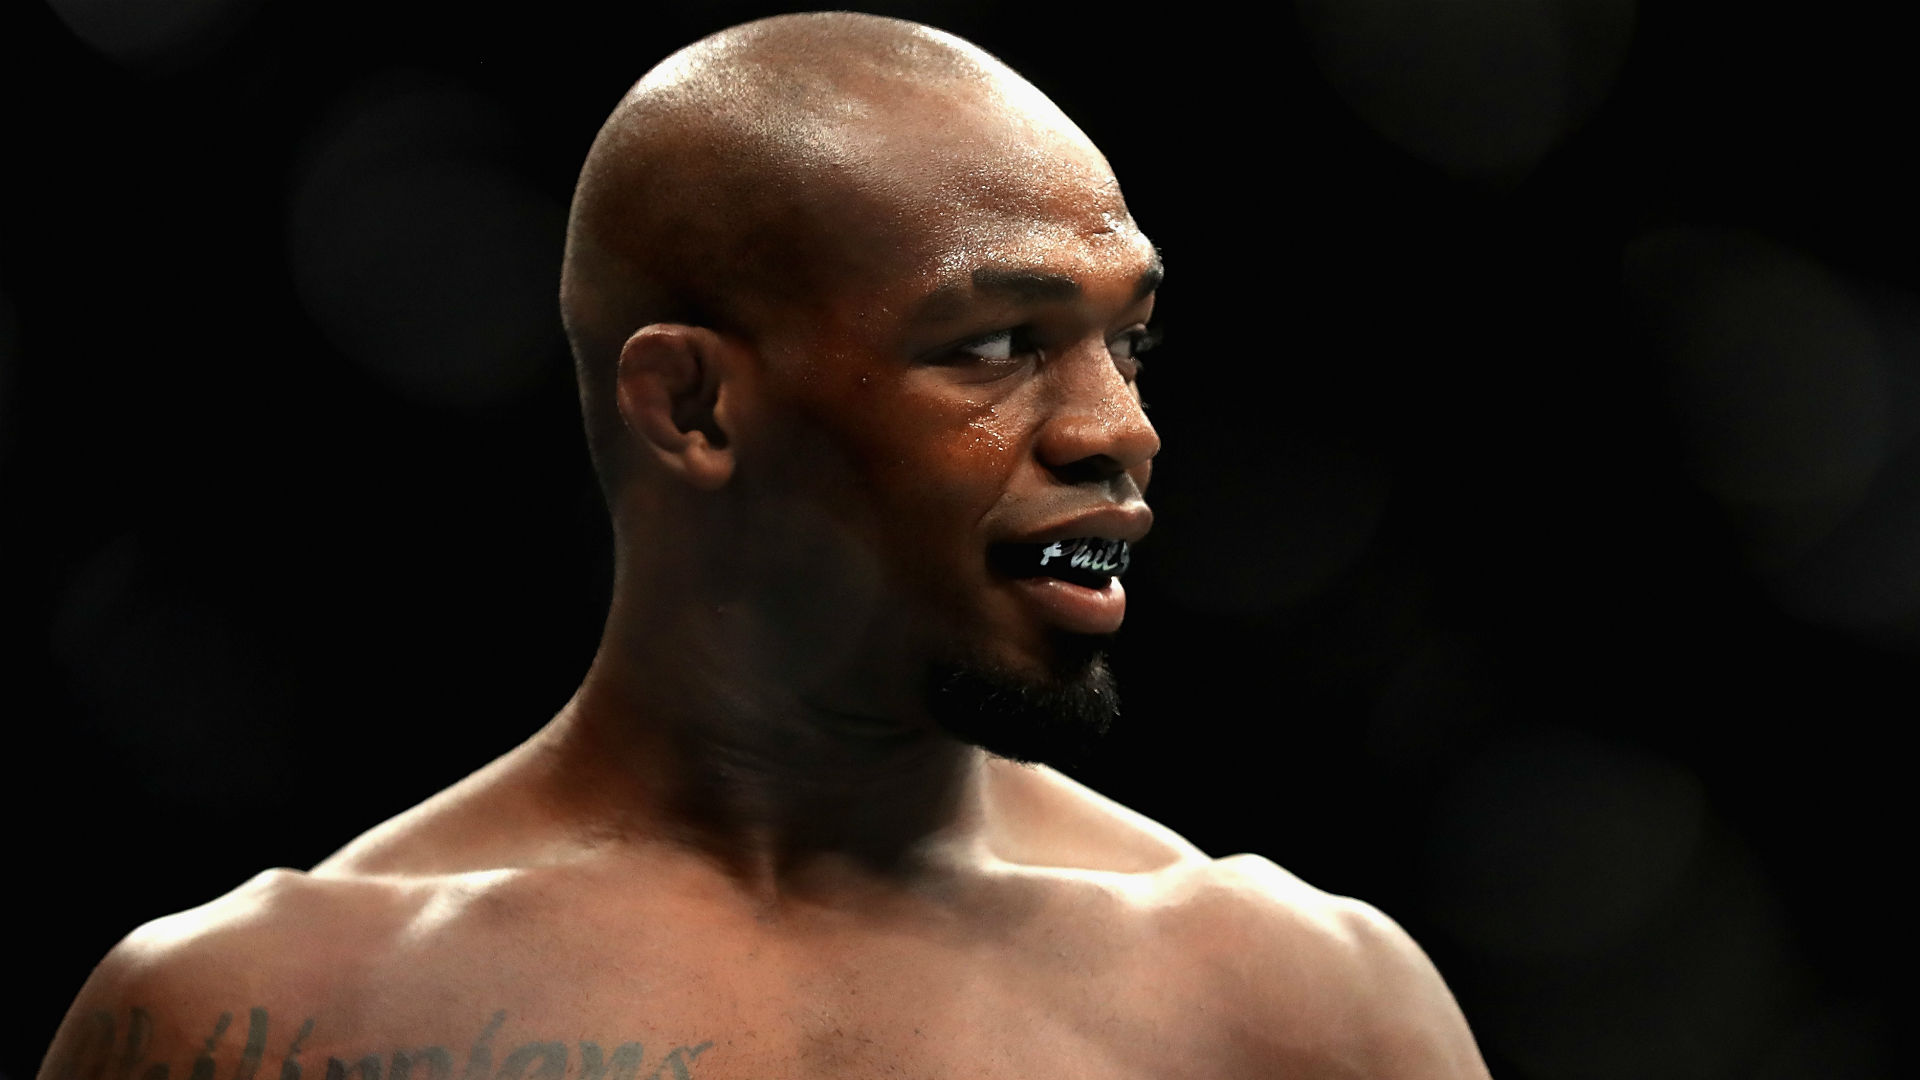 UFC moving Saturday UFC 232 card to Los Angeles for 'Bones' Jones